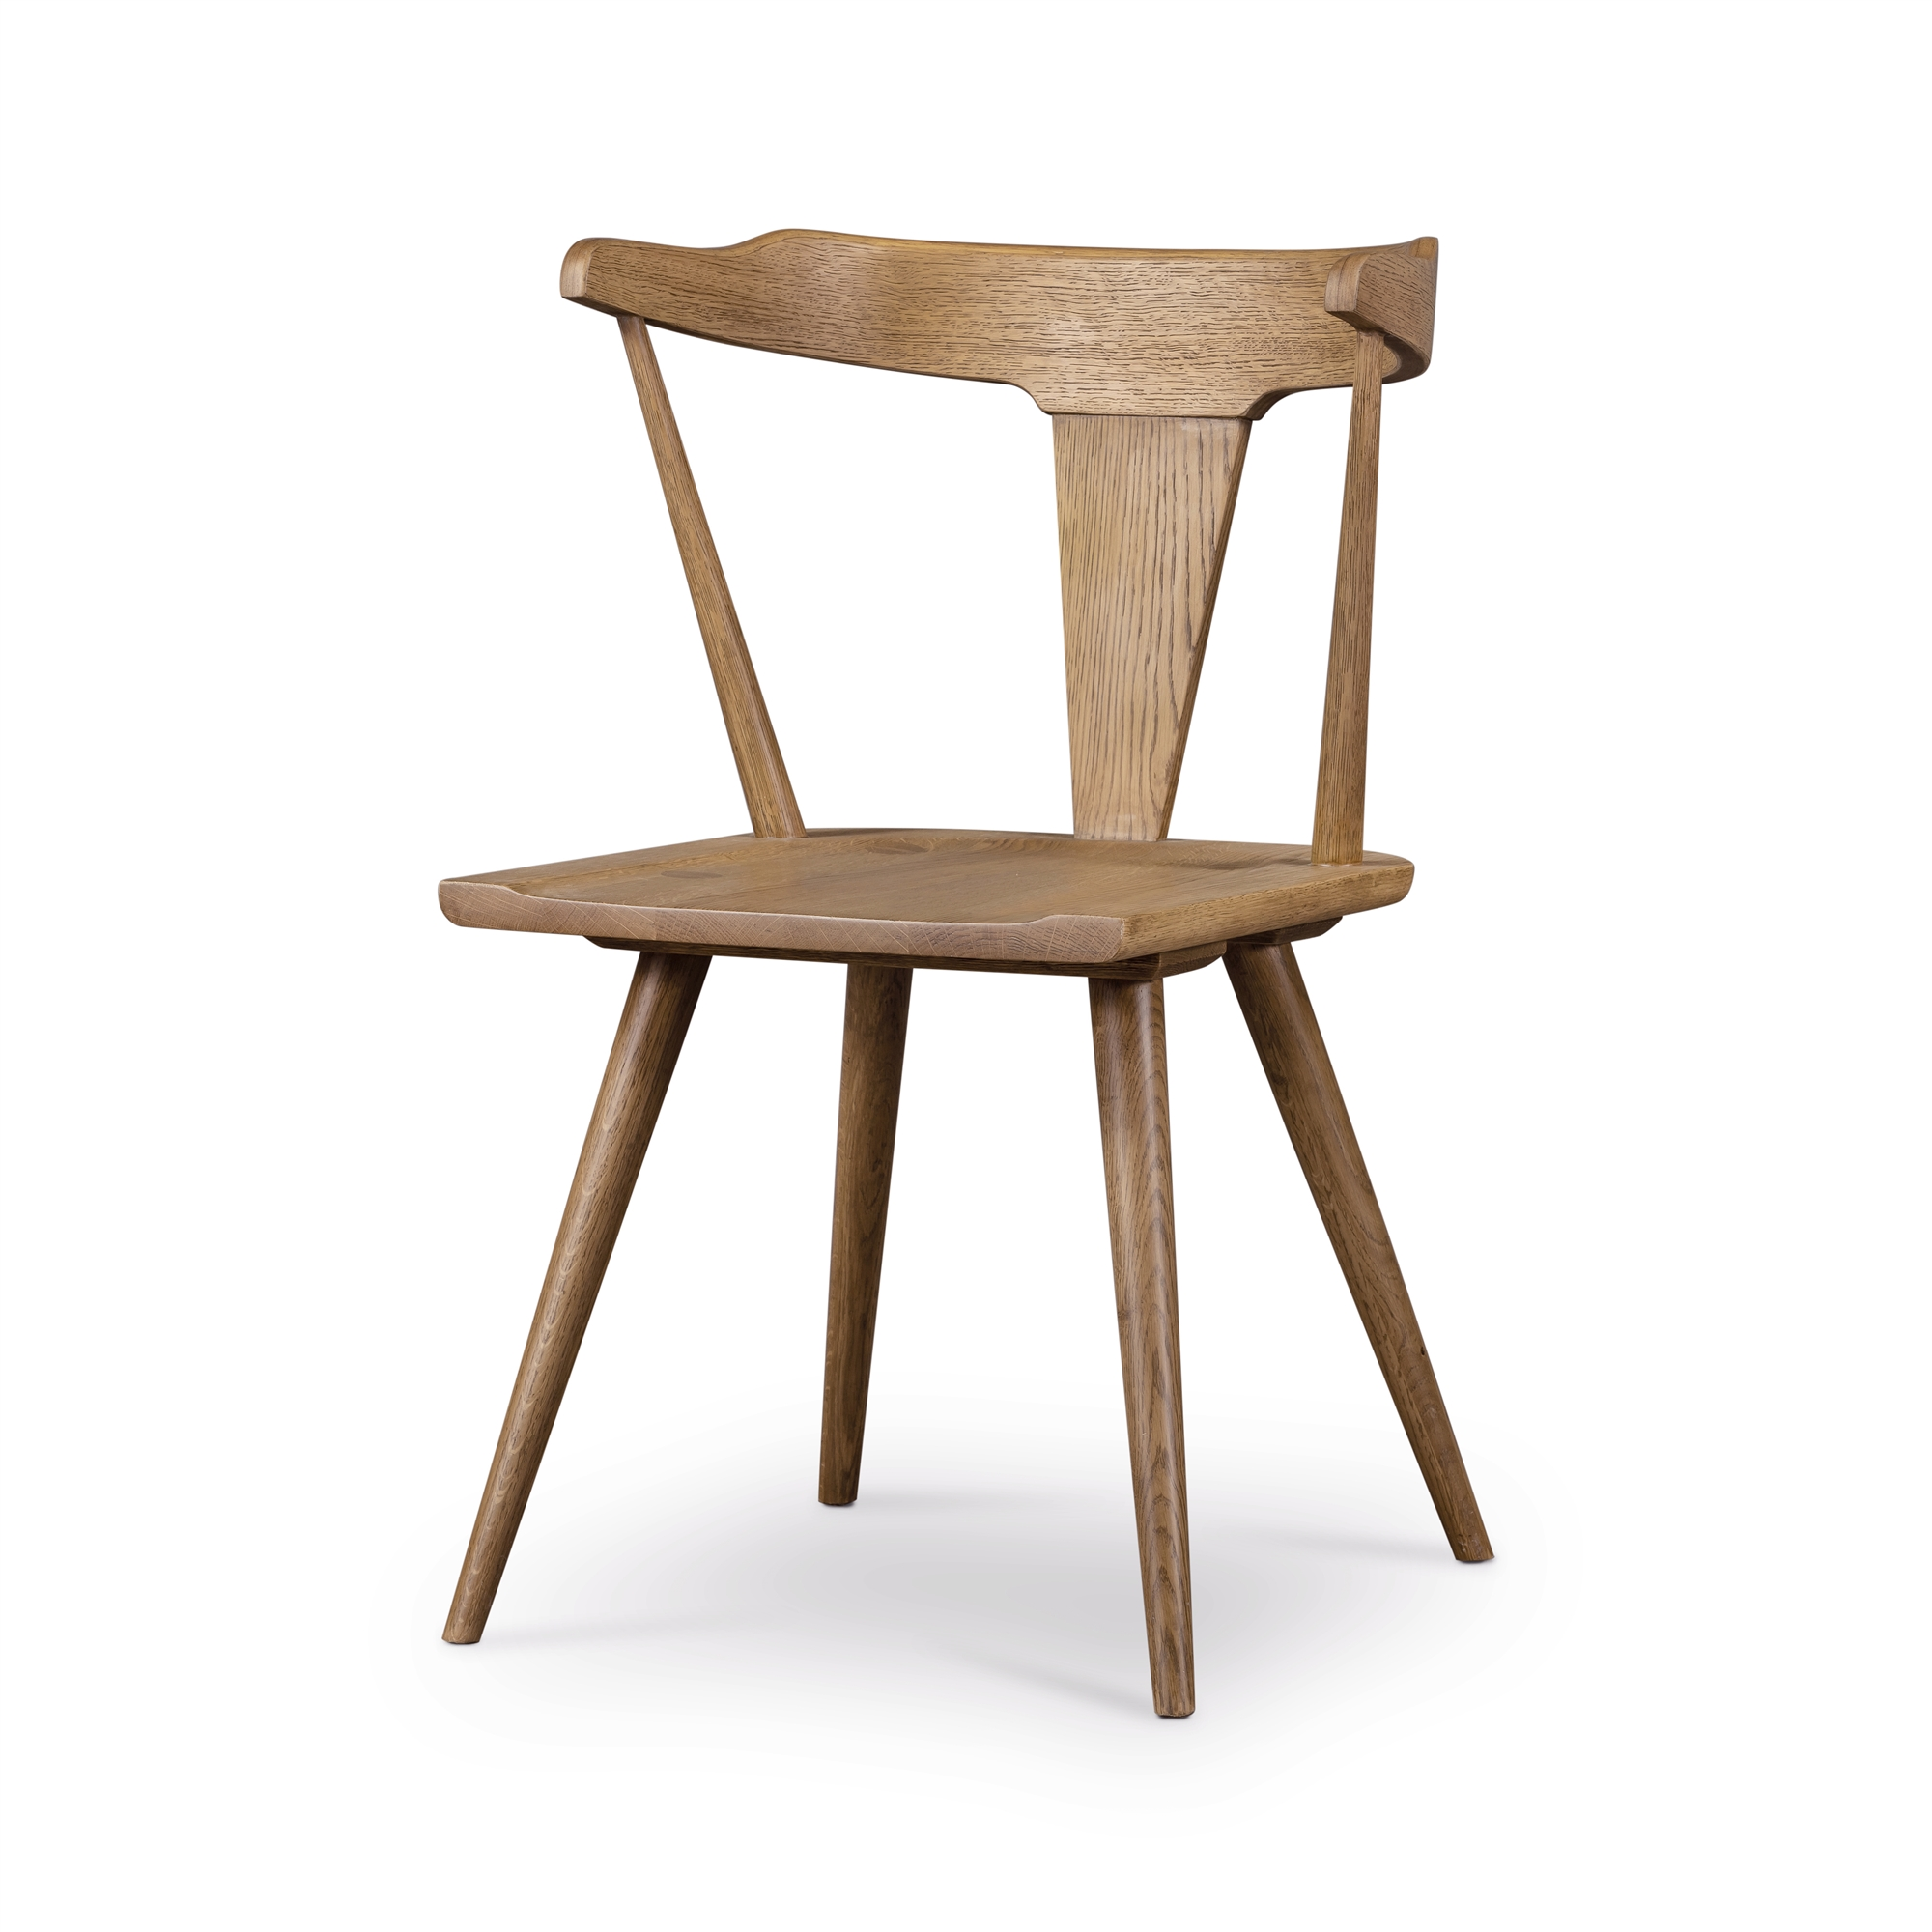 Belfast Ripley Dining Chair - Natural Oak